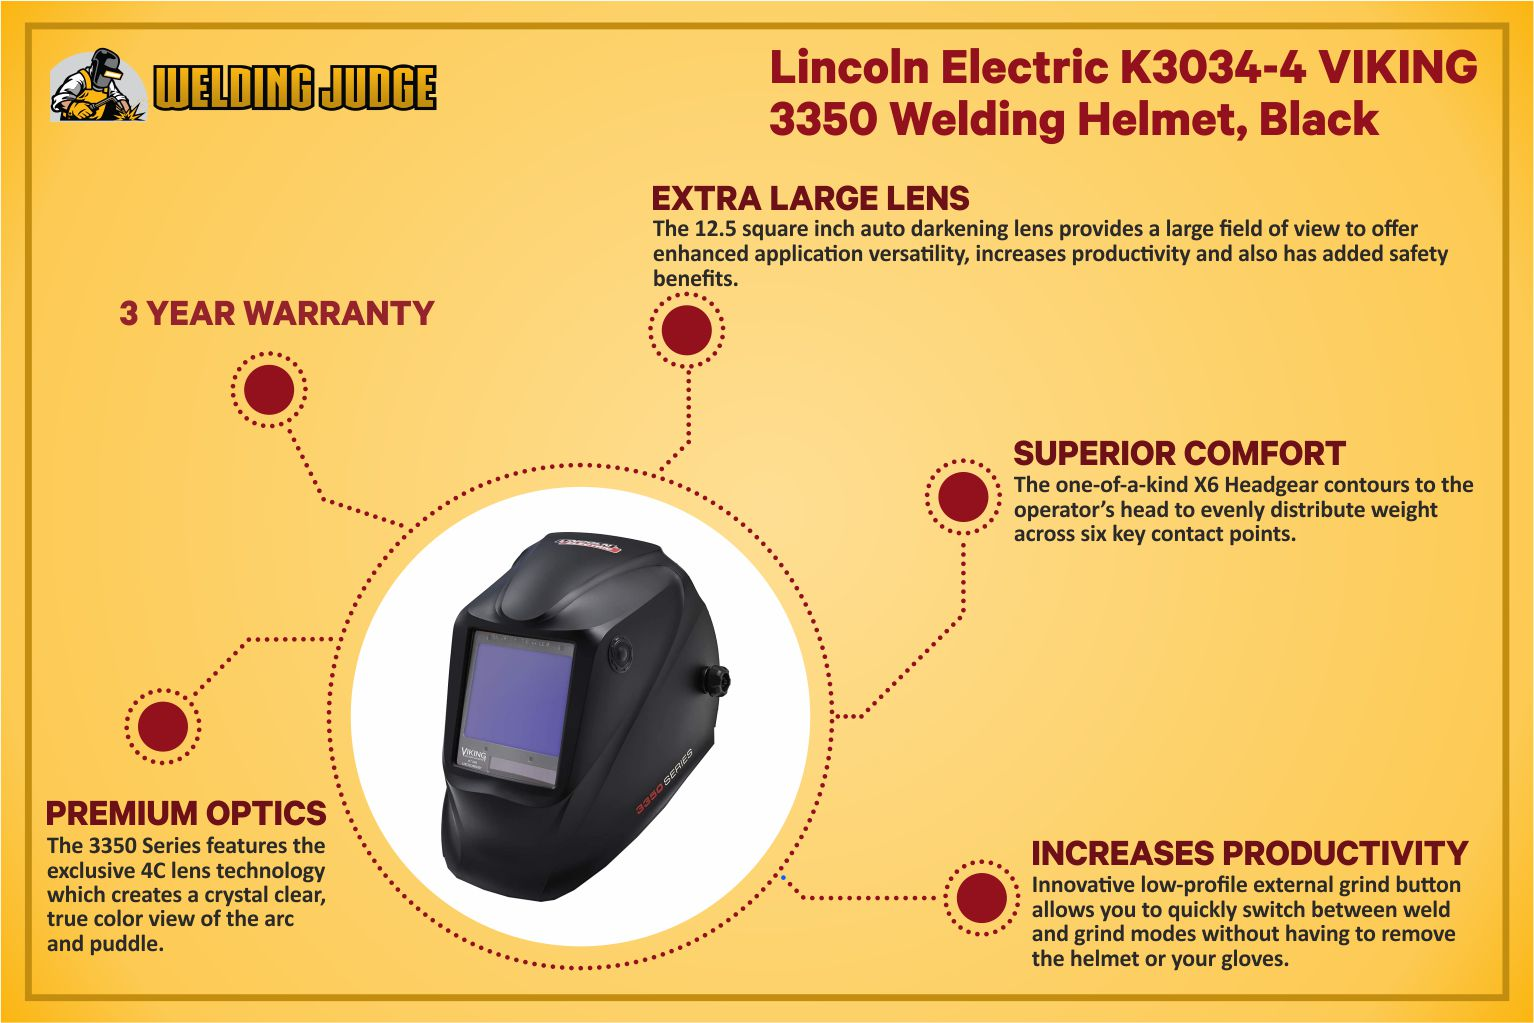 Lincoln Electric VIKING 3350 infographic review